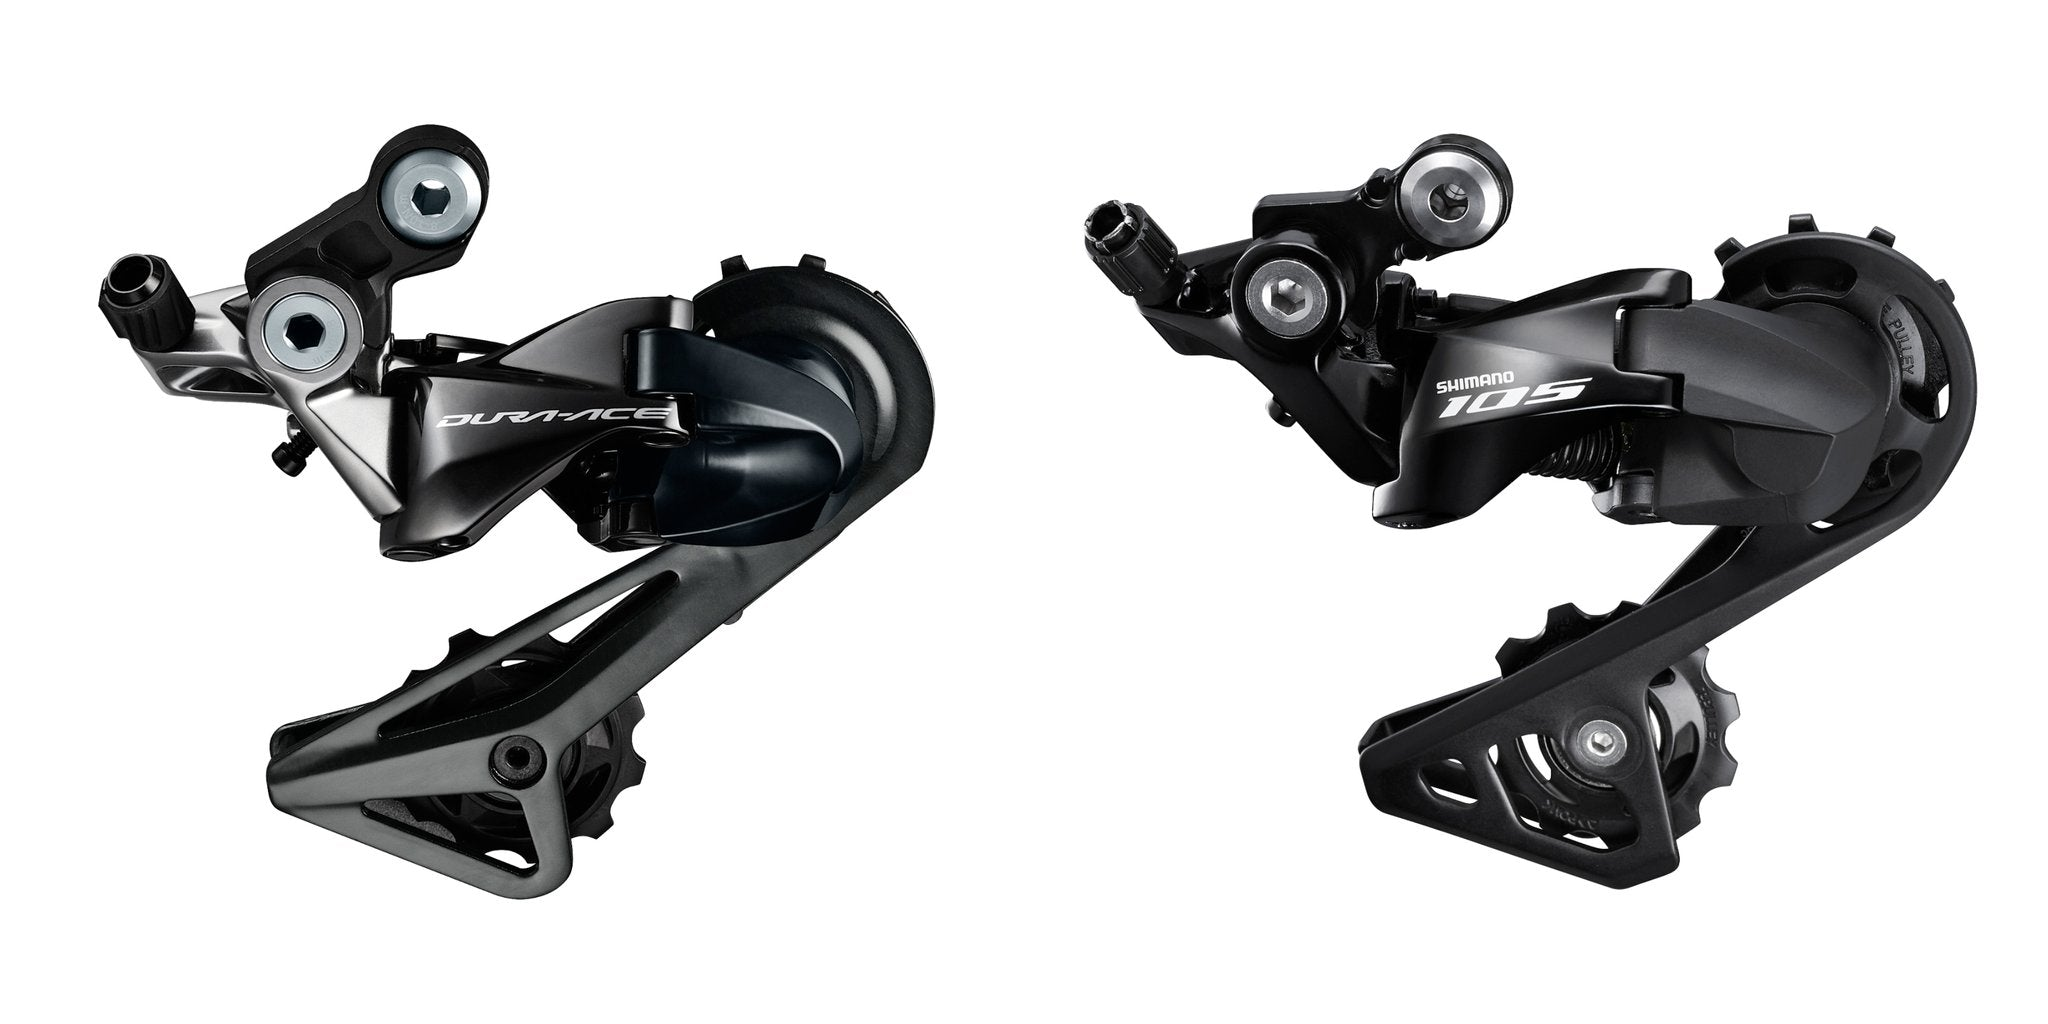 Shimano 105 vs Ultegra vs Dura-ace road bike drivetrain group set